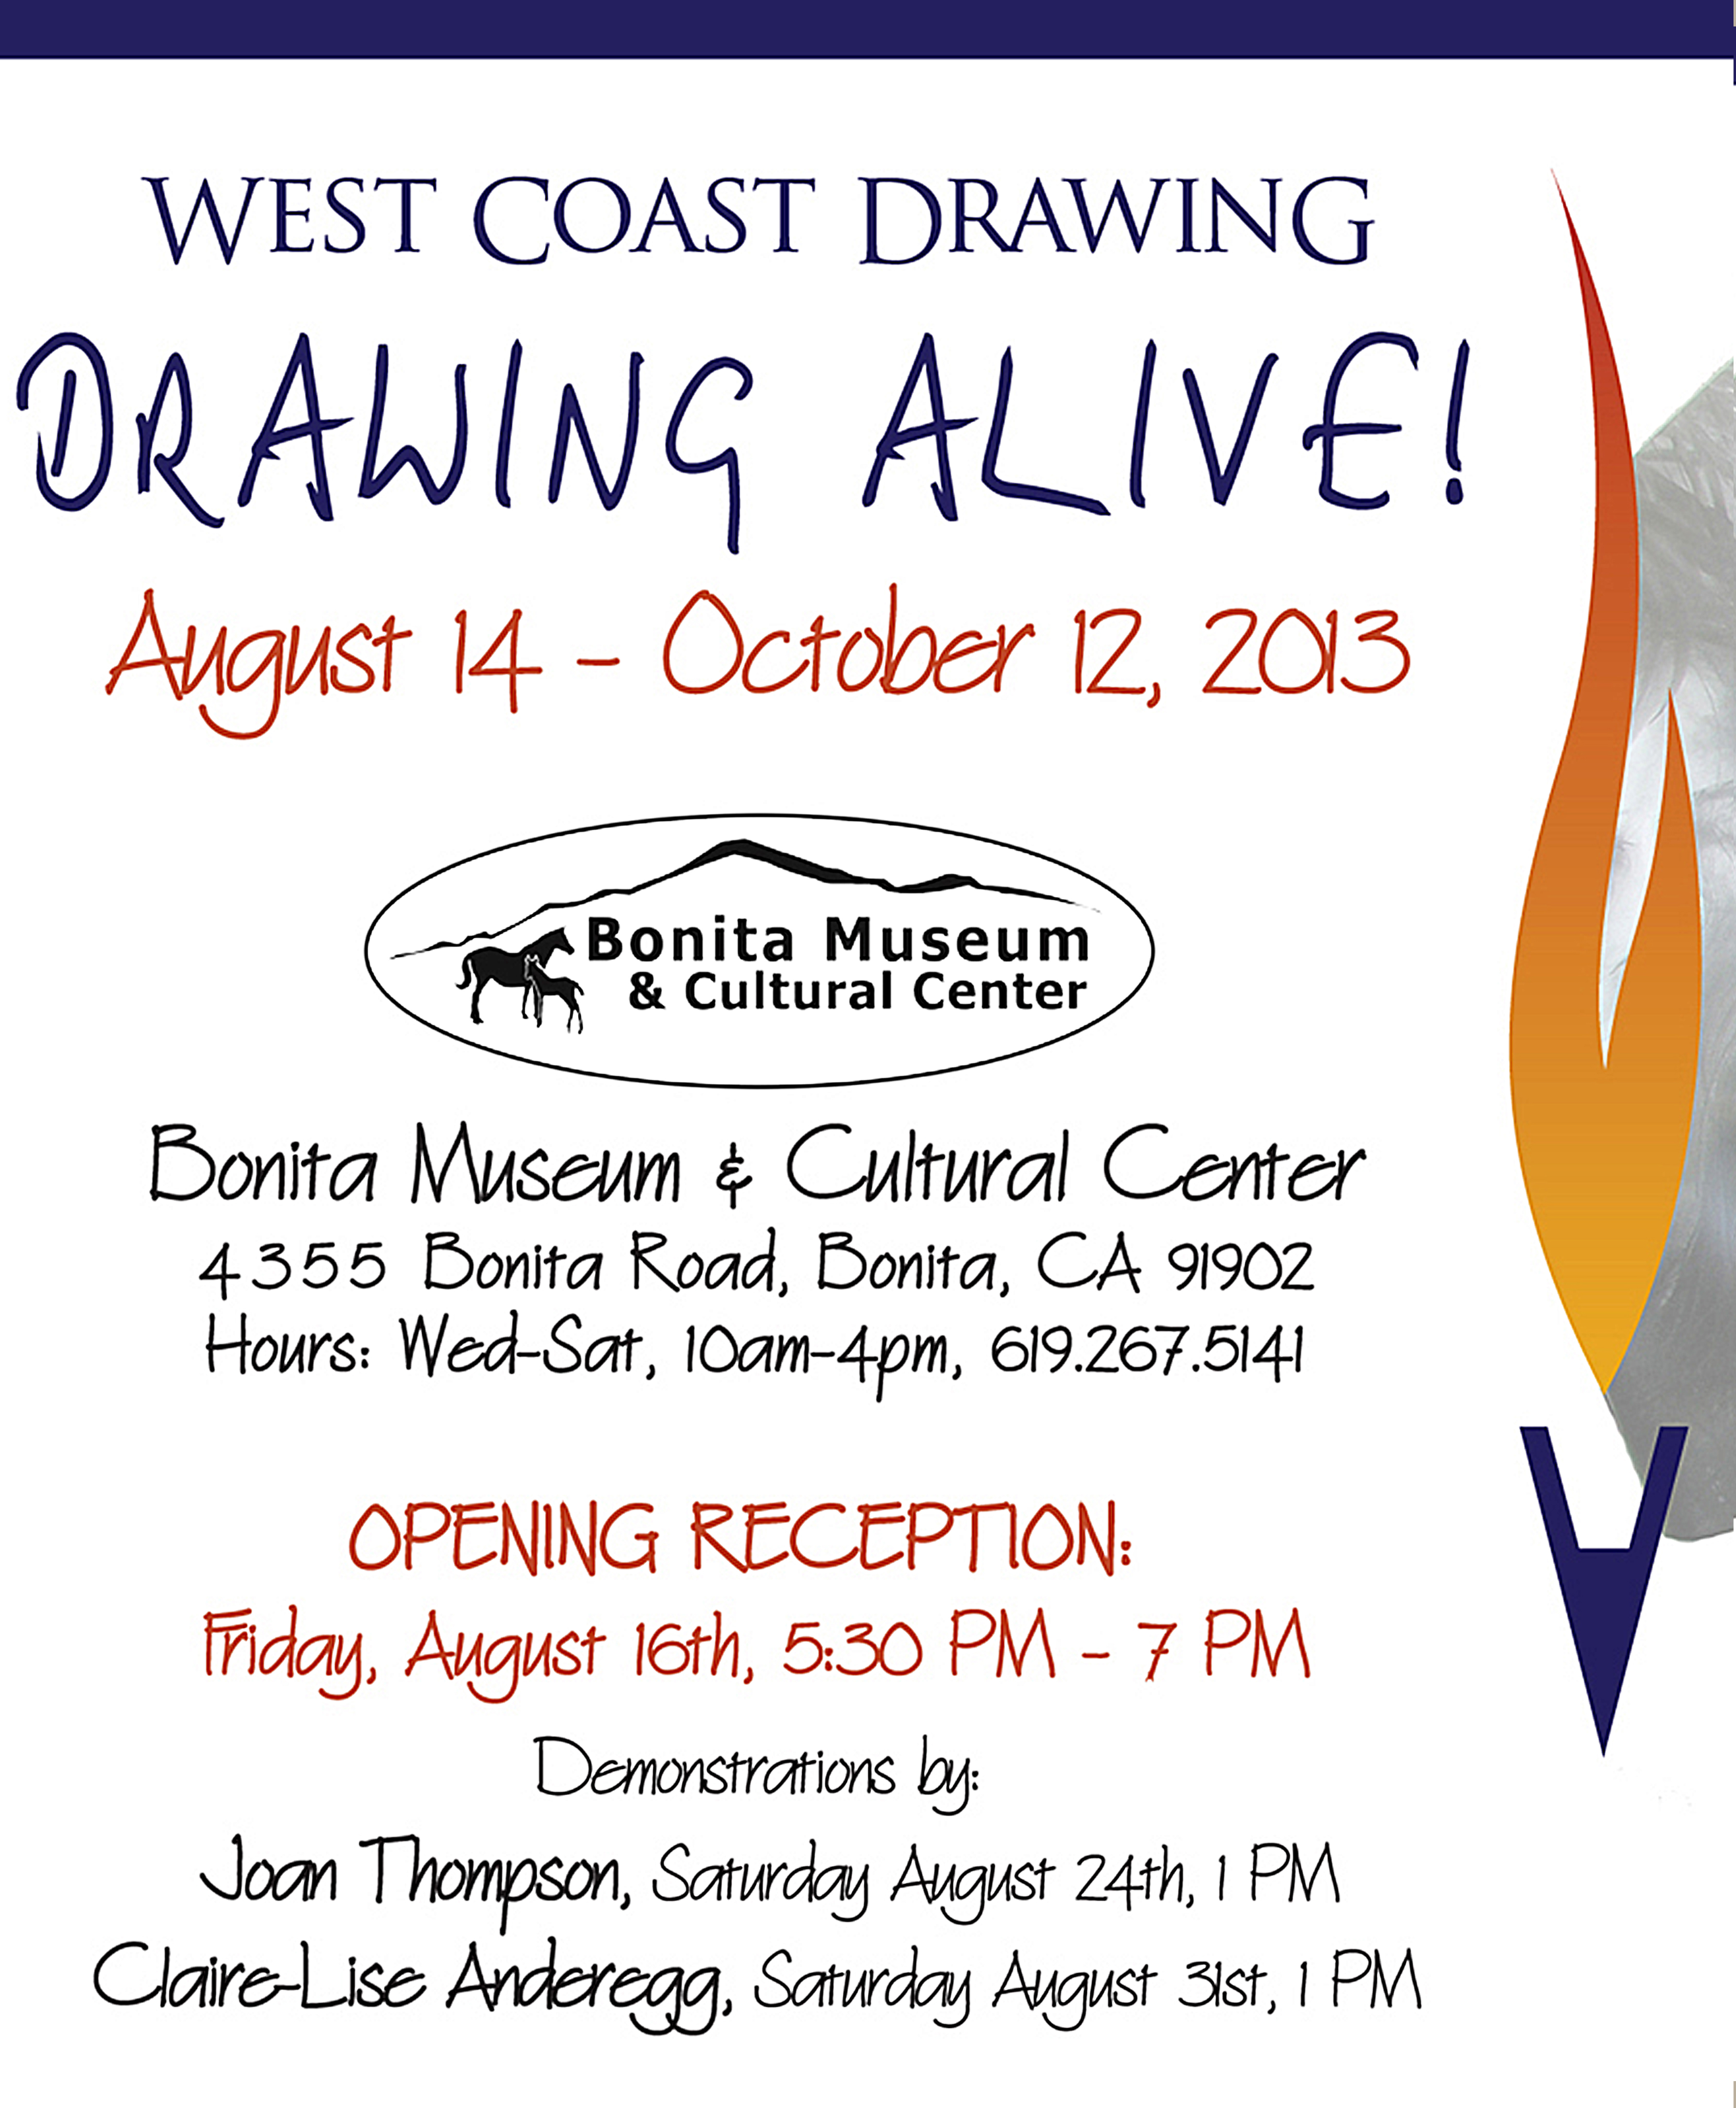 West Coast Drawing 10th anniversary exhibition